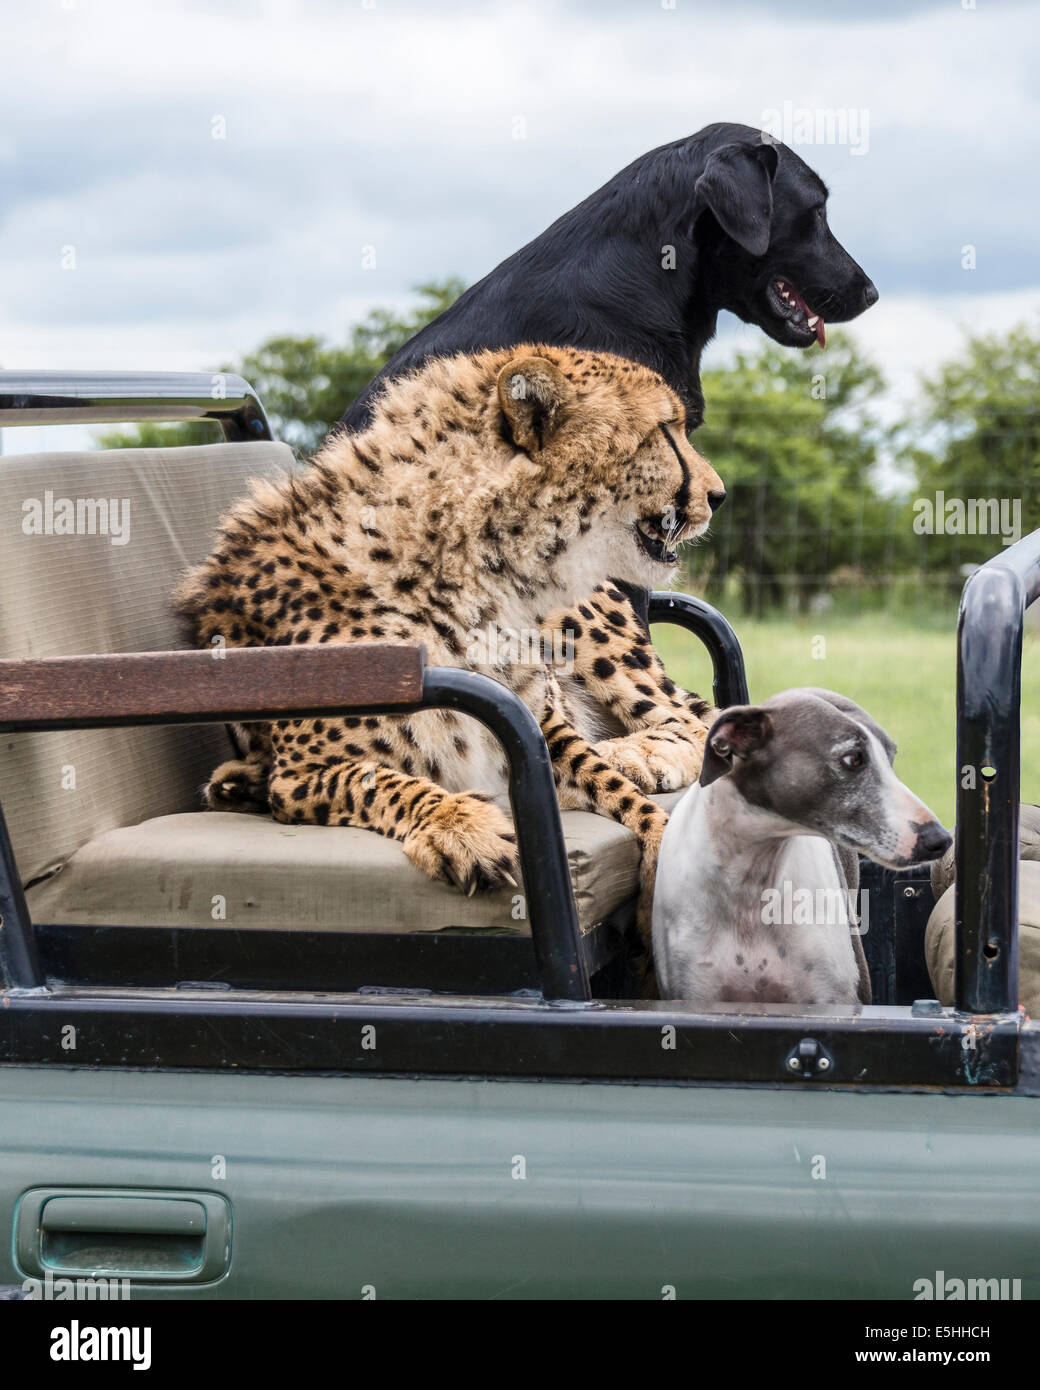 Leopard and dogs ride as passengers in jeep, Nambiti Reserve, Kwa-Zulu Natal, South Africa - Stock Image